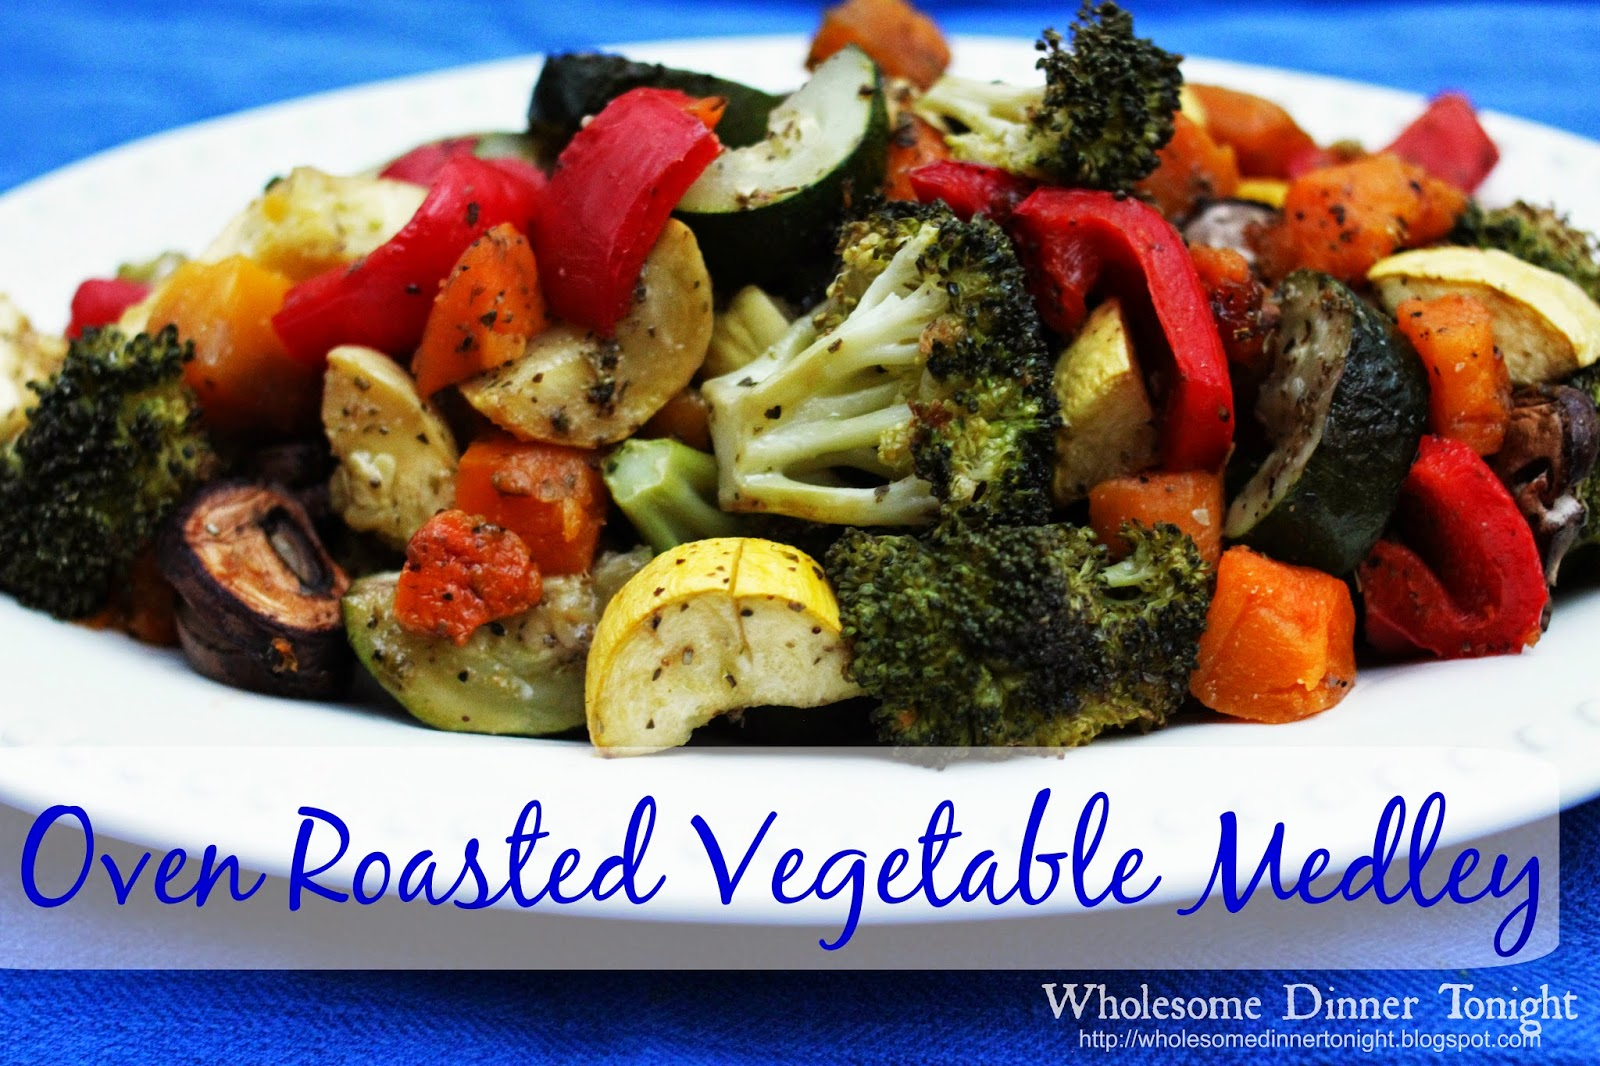 Wholesome Dinner Tonight: Oven Roasted Vegetable Medley {Clean Eating ...